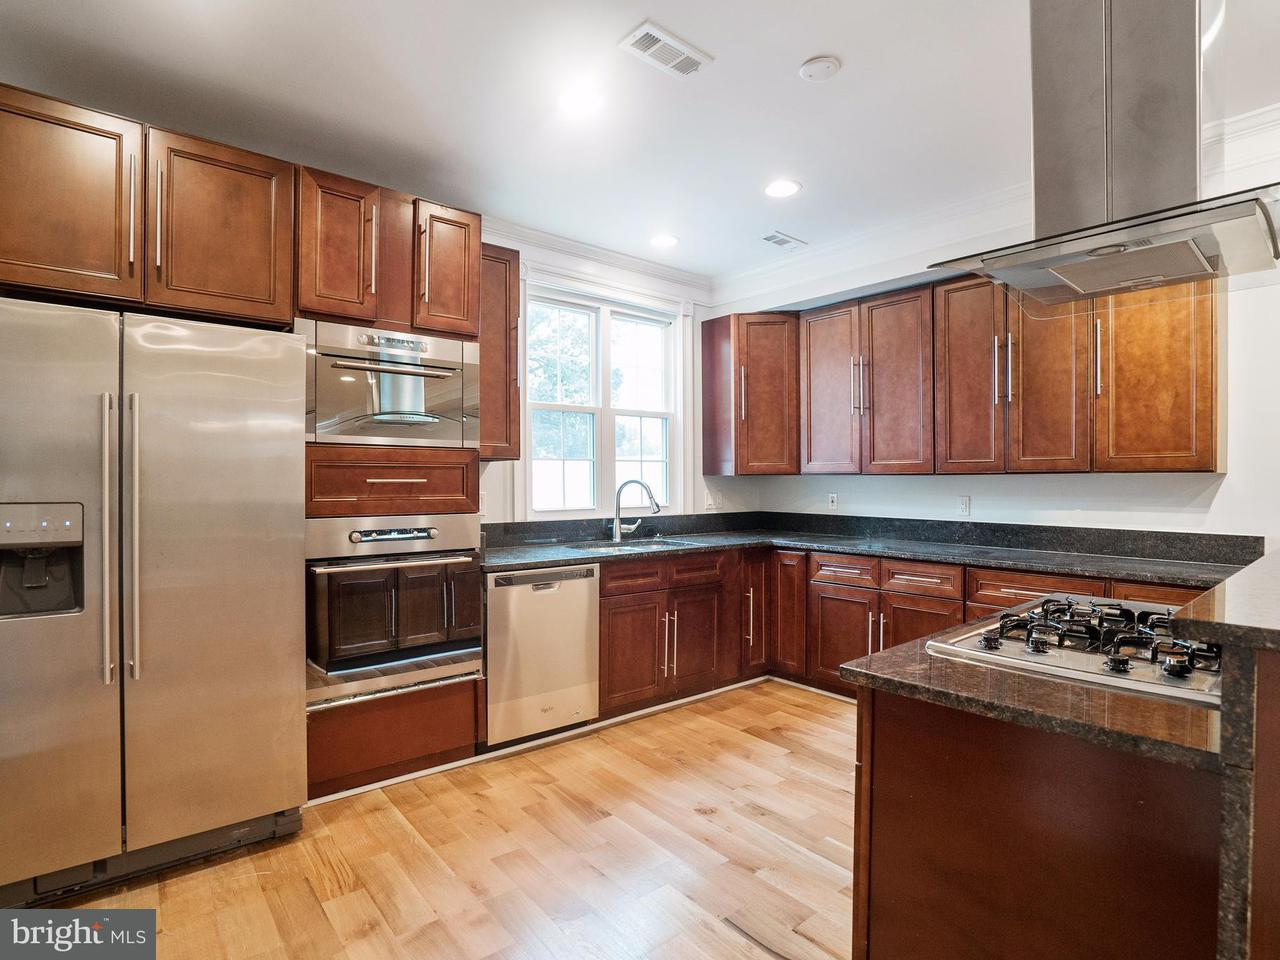 Townhouse for Sale at 826 ALLISON ST NW 826 ALLISON ST NW Washington, District Of Columbia 20011 United States